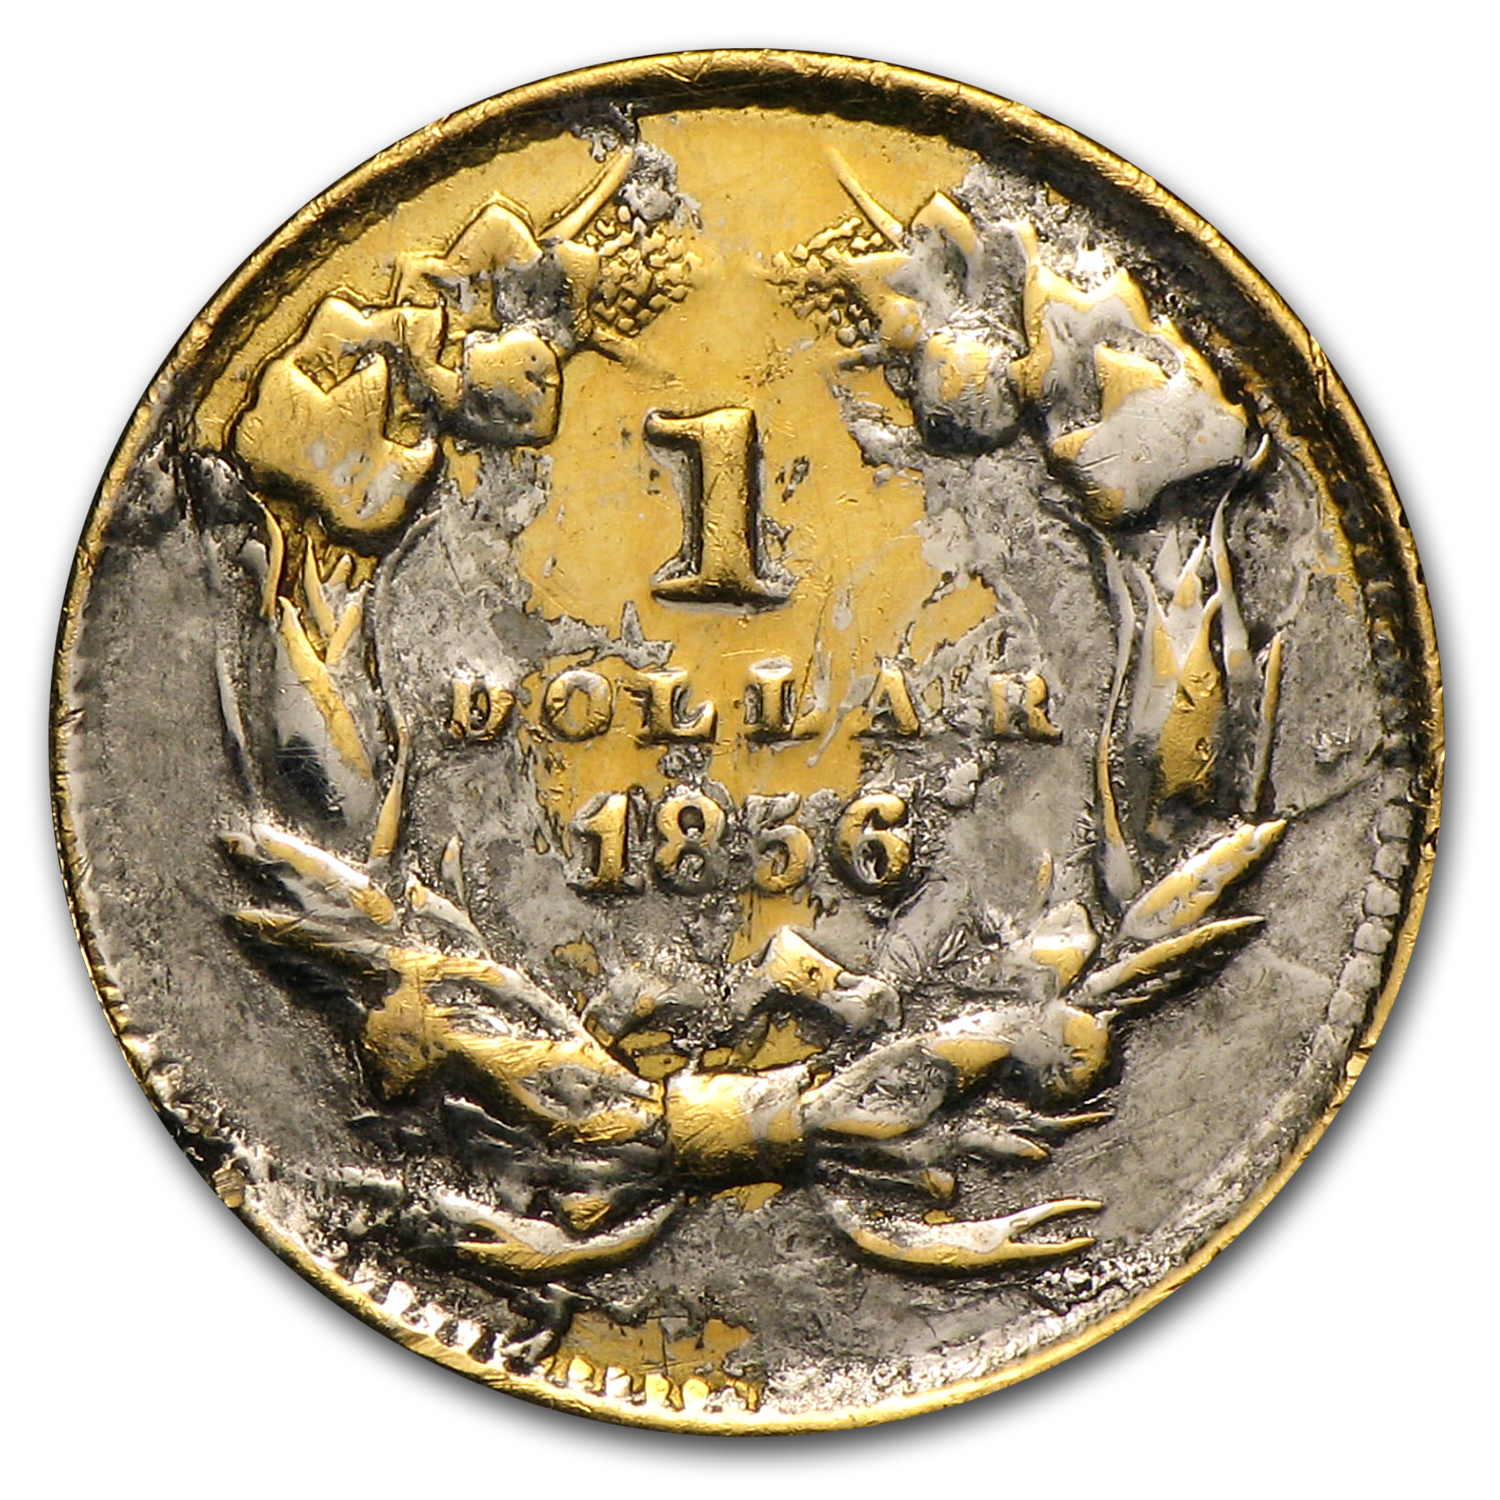 $1.00 Liberty Gold-Type III - 1856 Love Token - R C M